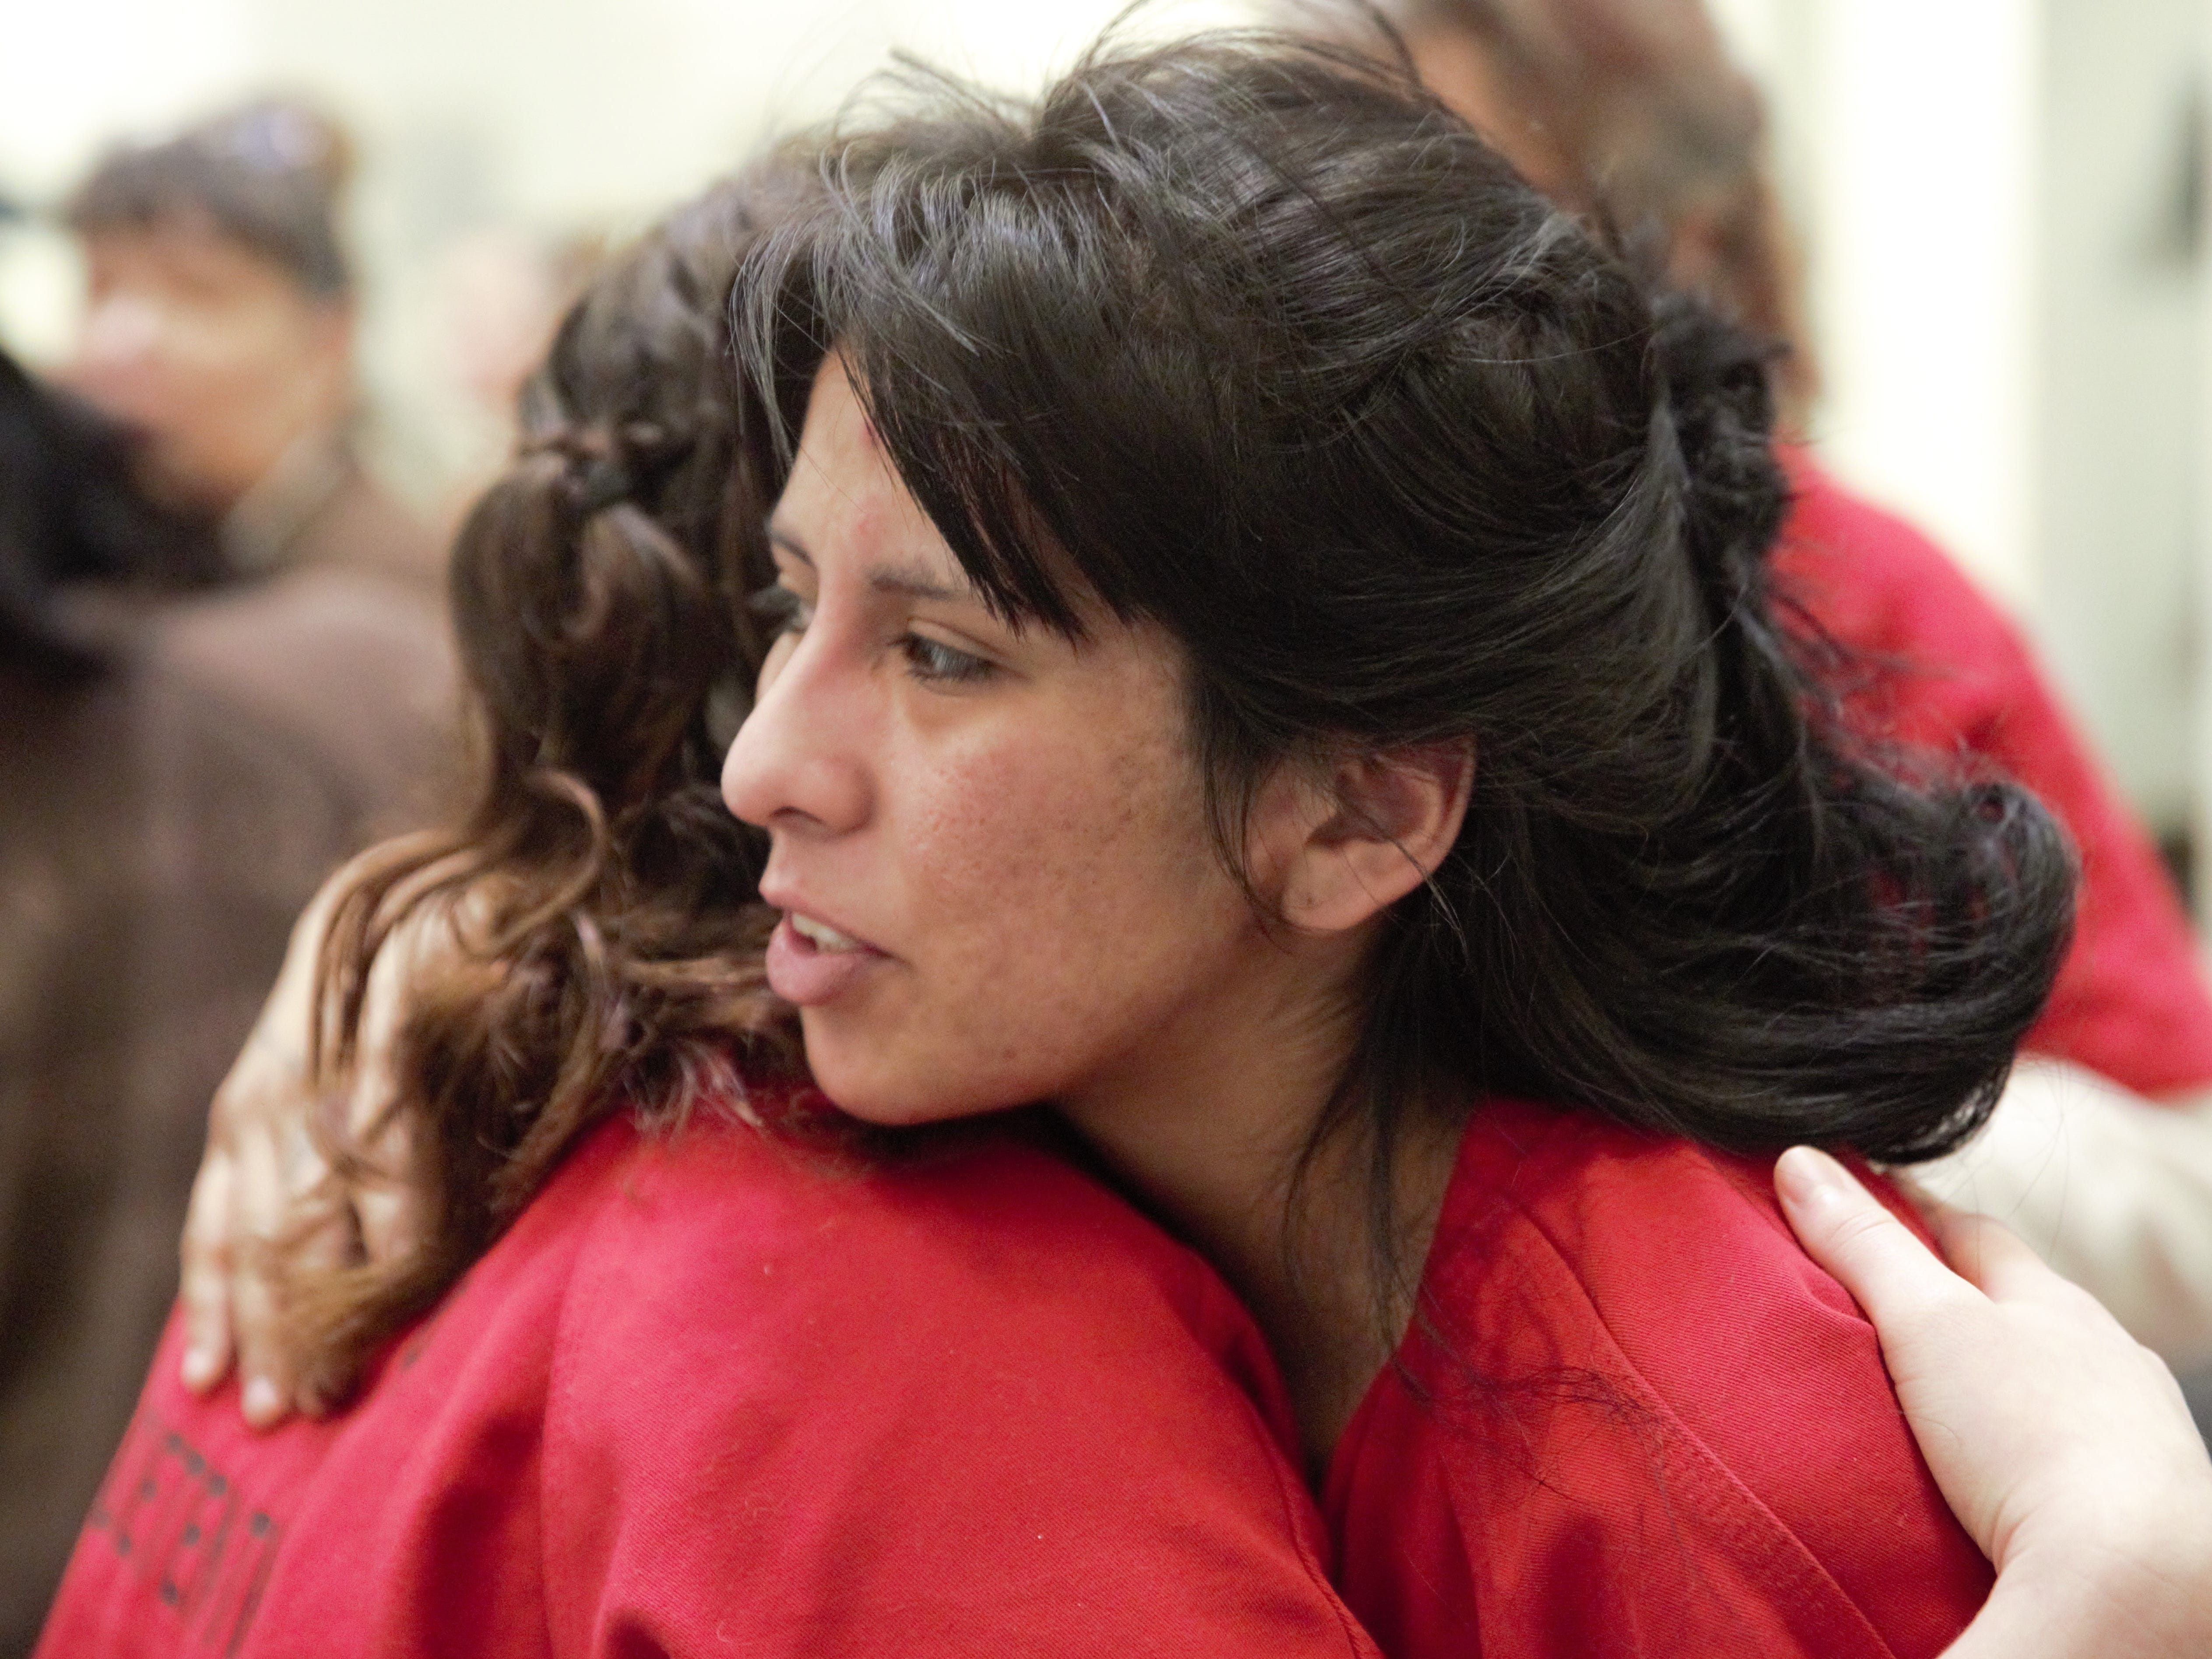 Two inmates hug at the close of a Mass service on Tuesday, Dec. 25, 2018 in the Doña Ana County Detention Center, 1850 Copper Loop, Las Cruces.